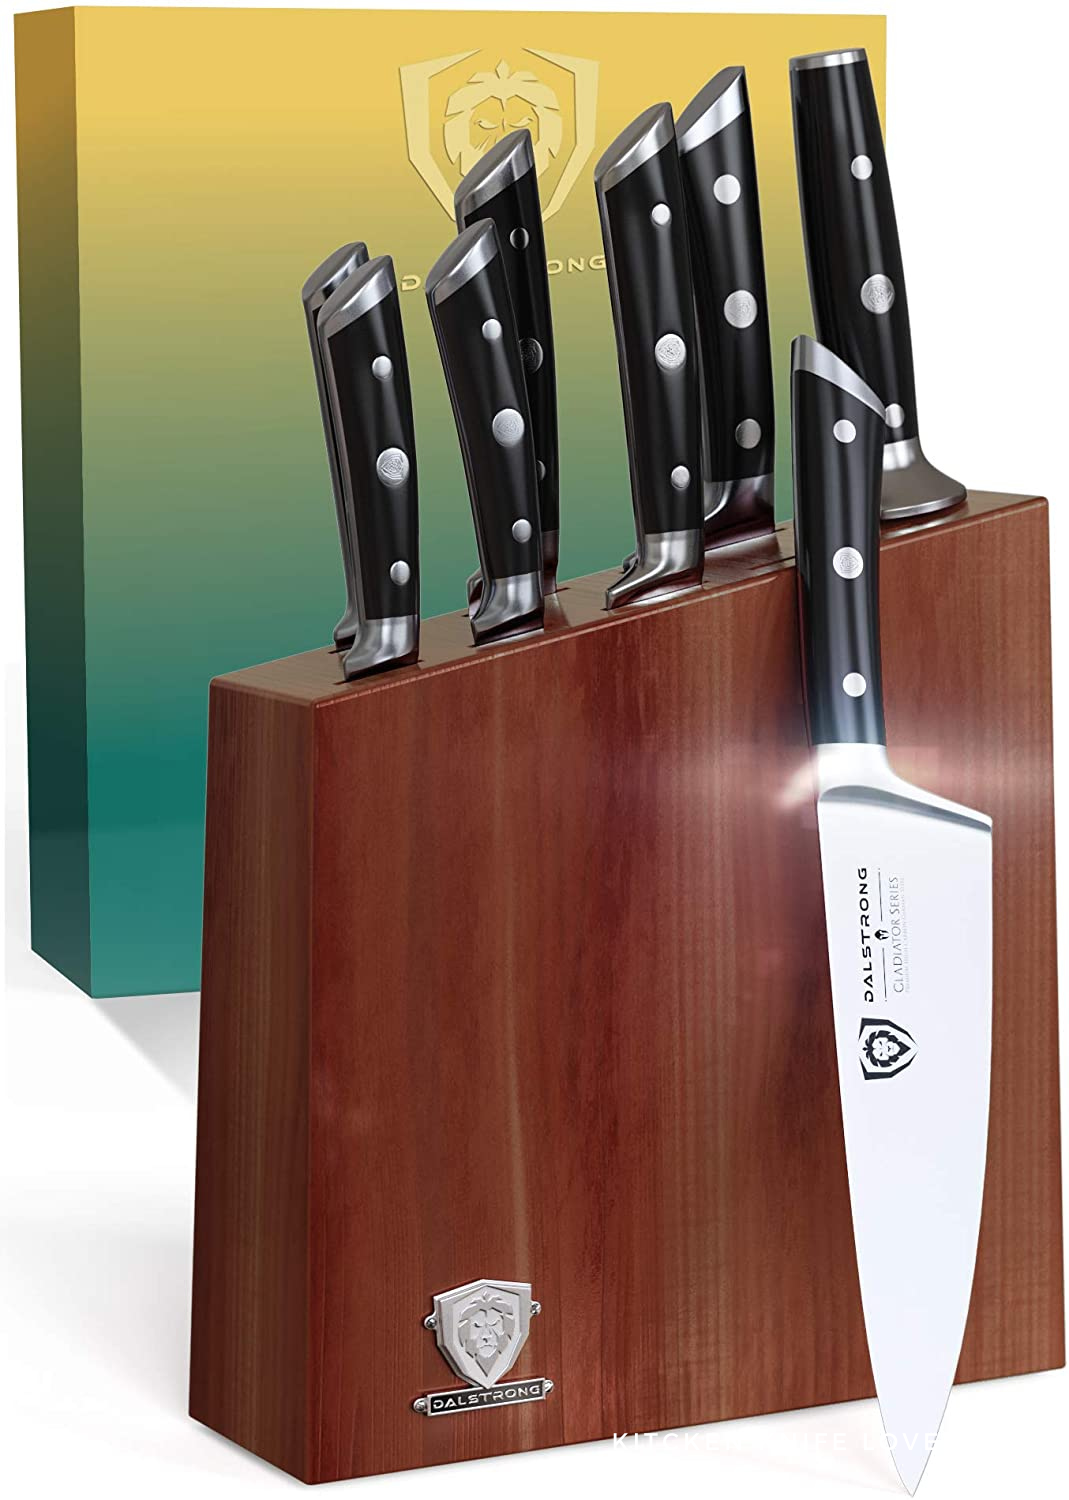 Dalstrong gladiator Review 8-Piece Knife Block Set